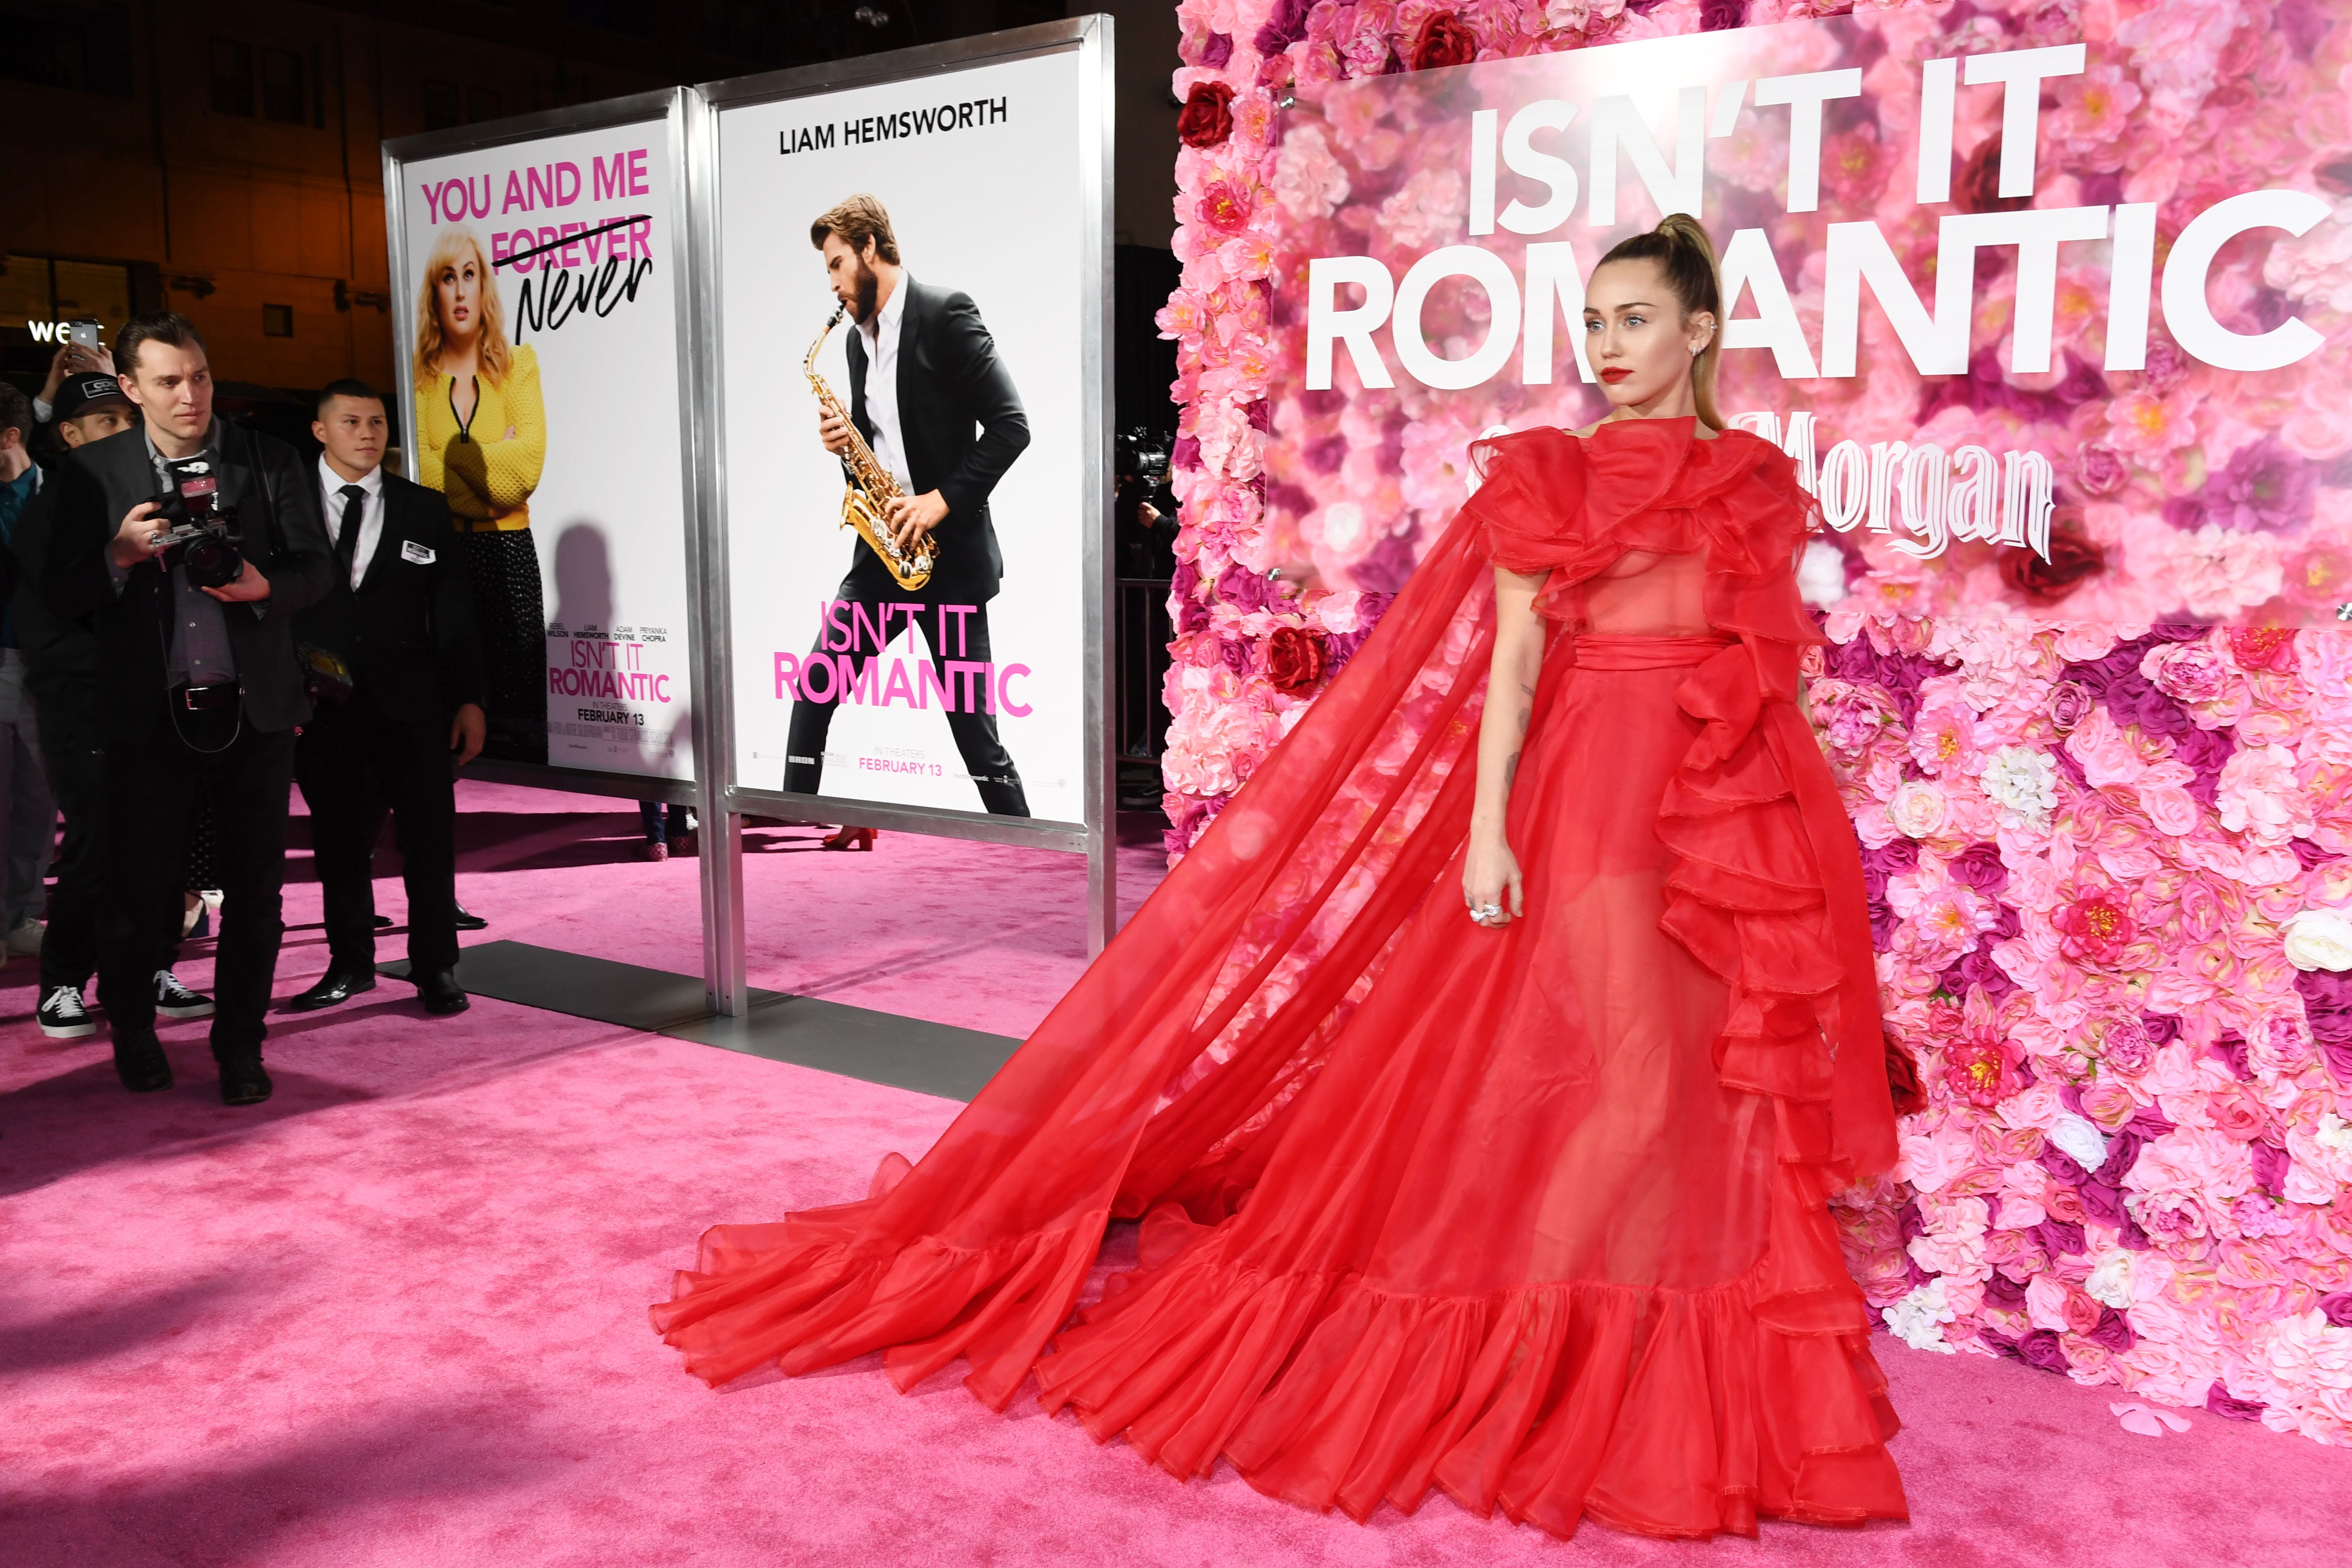 Miley Cyrus steps in for hospitalized Liam Hemsworth at 'Isn't It Romantic' premiere